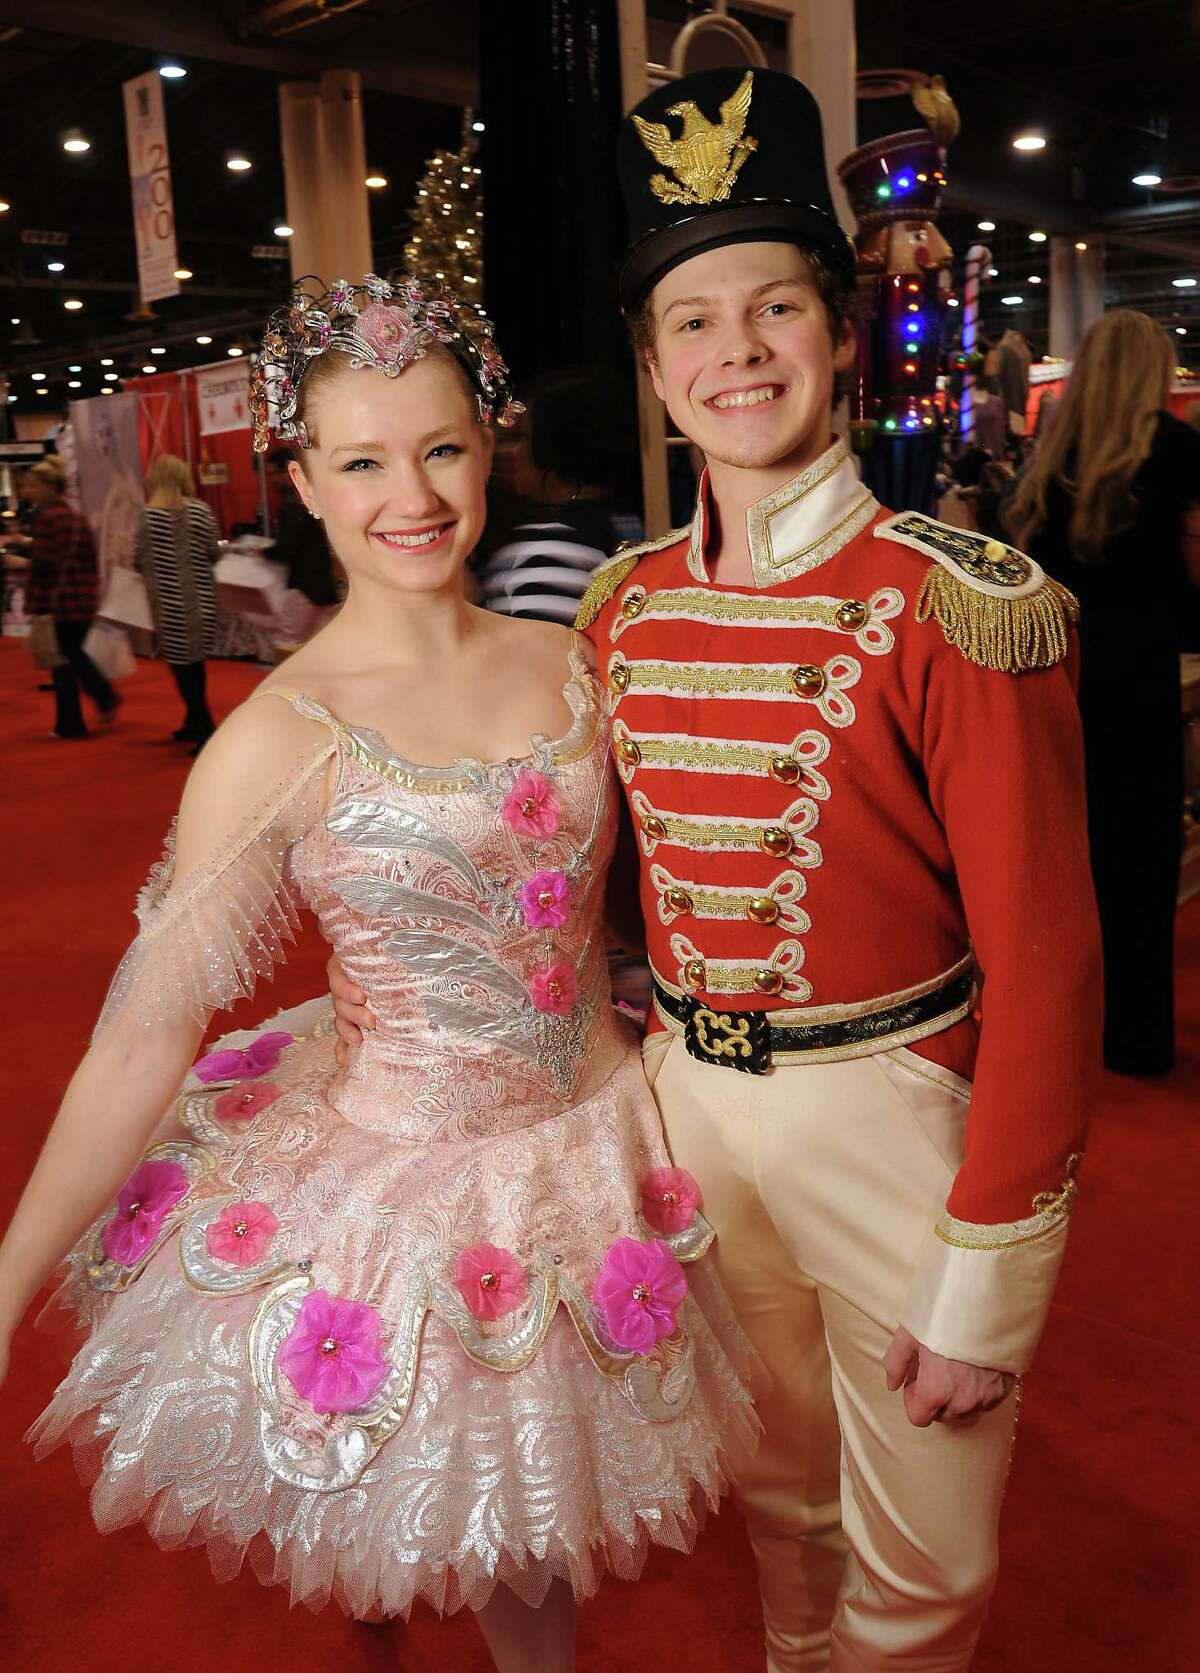 Hacks, tricks for the Nutcracker Market The annual event brings thousands of holiday shoppers to the NRG Center for an entire weekend of shopping festivities. Several Houston Chronicle employees have gone to the annual event for years and they're sharing their tips, tricks, and hacks to properly succeeding at the Nutcracker Market. Continue through the photos to see the tips for the annual event.